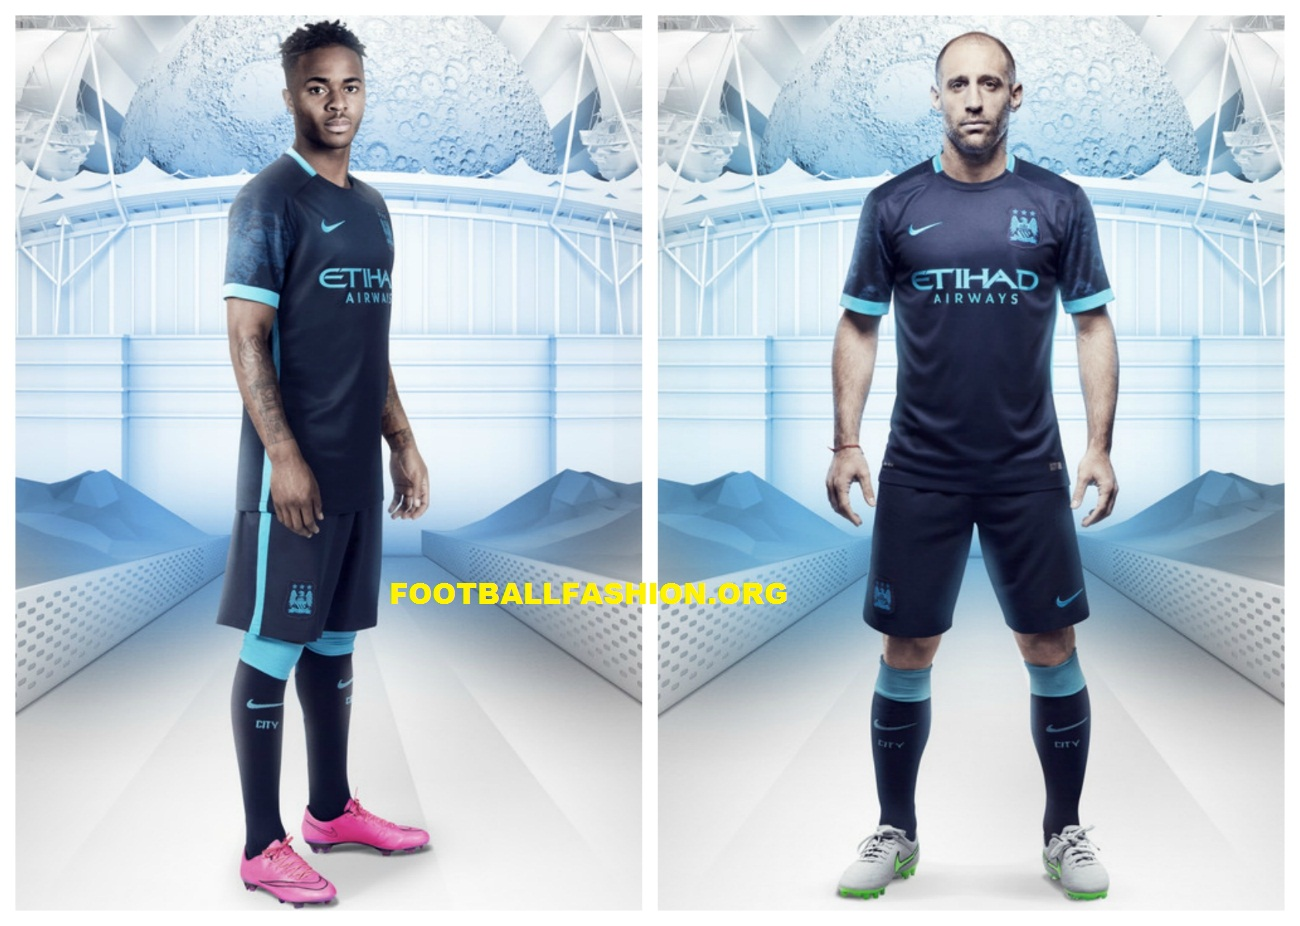 wholesale dealer 84399 095cd Manchester City FC 2015/16 Nike Away Kit - FOOTBALL FASHION.ORG